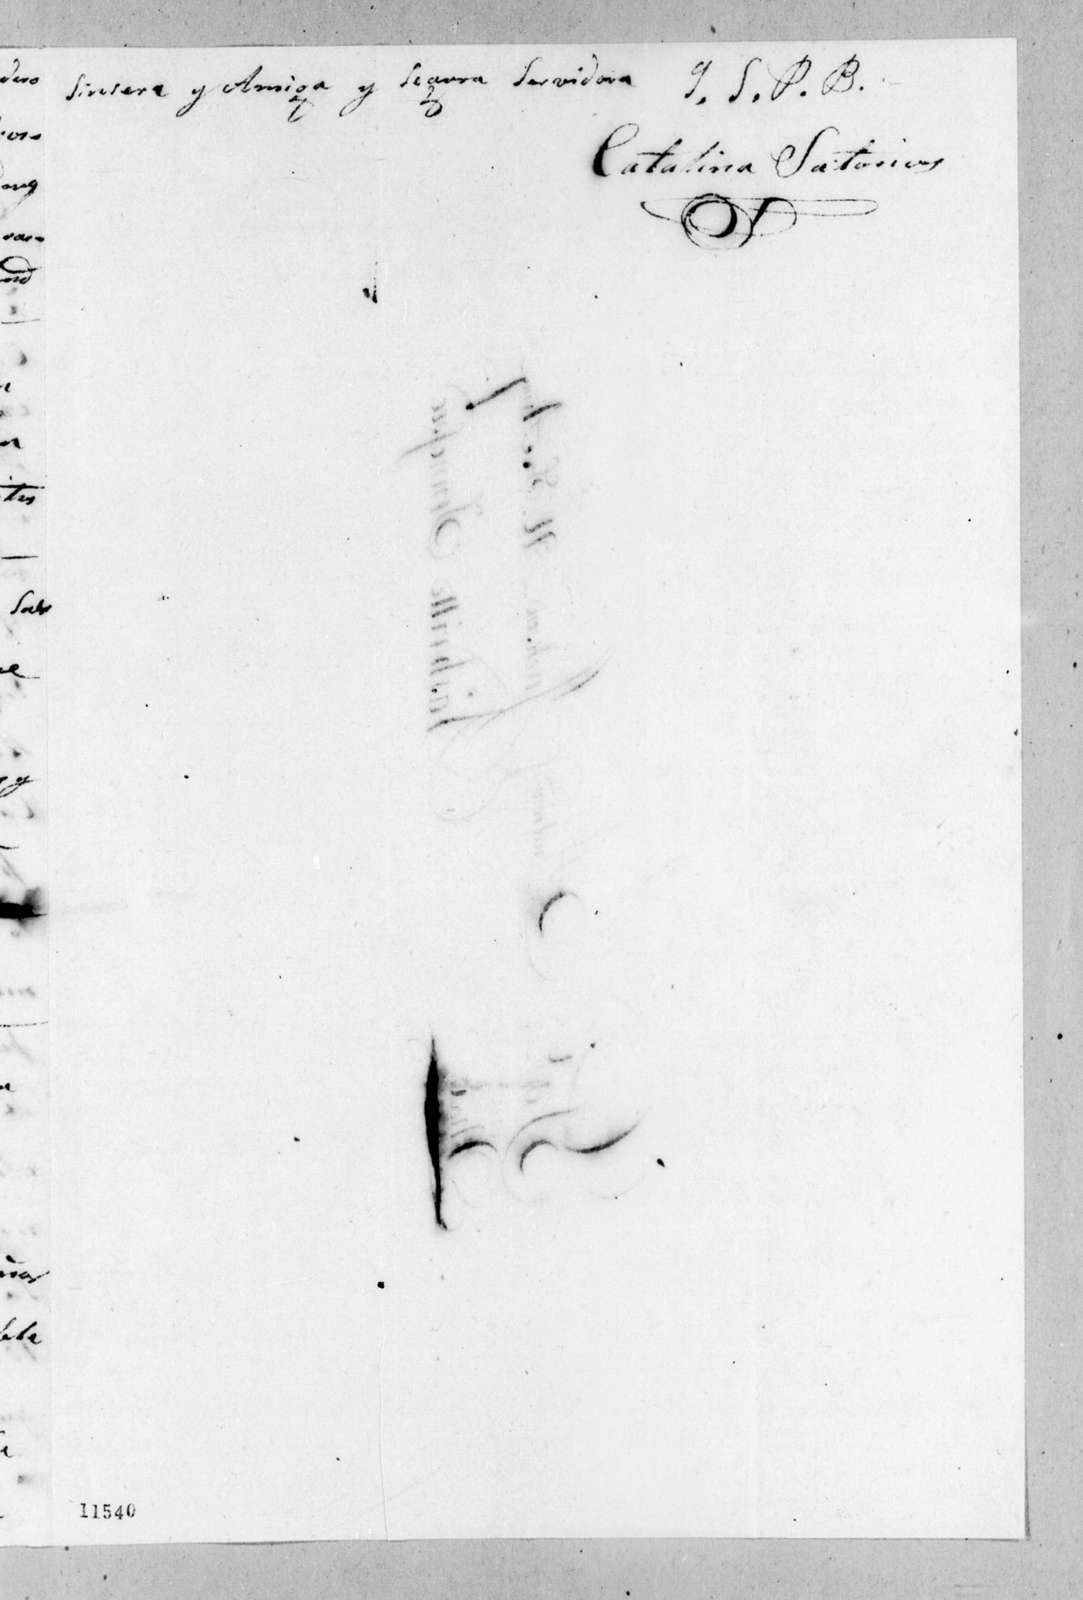 Catalina Mir Satorios to Andrew Jackson, July 8, 1822